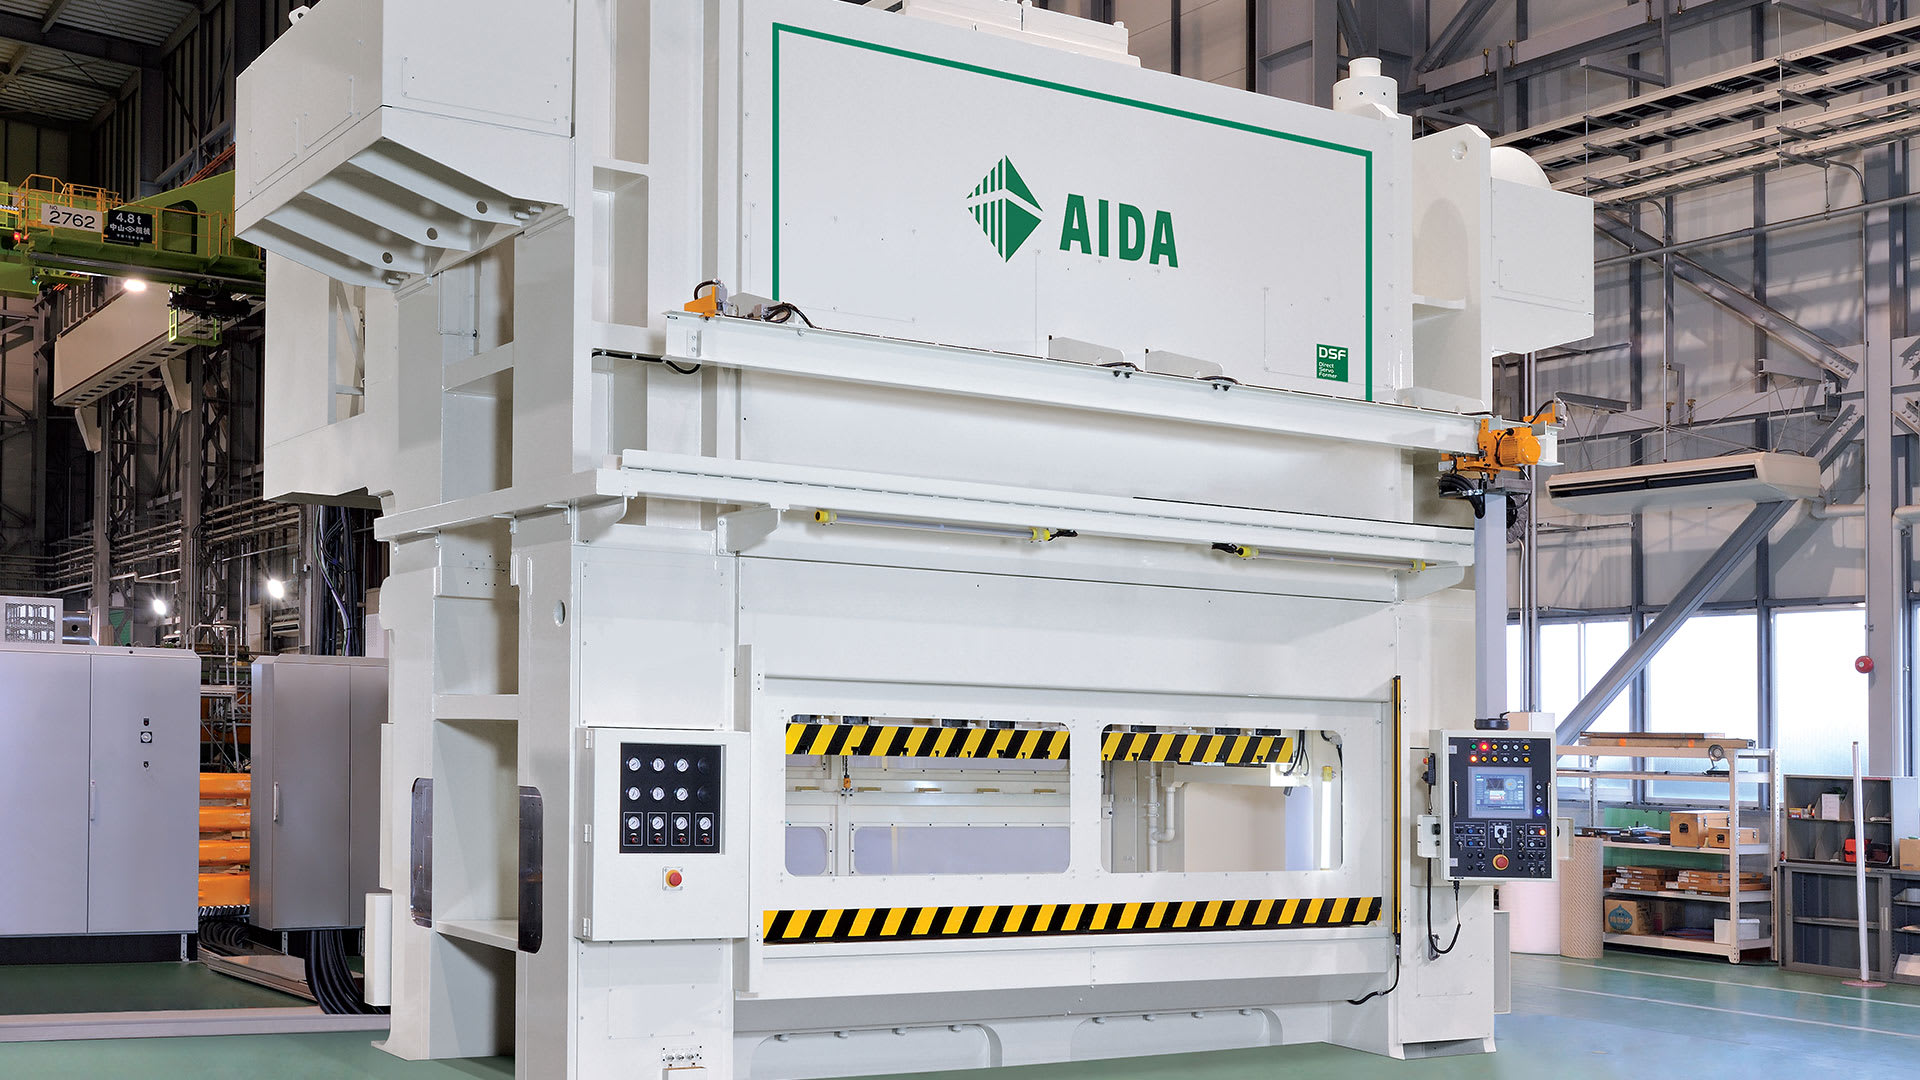 DSF-U Ultra-High Precision Servo Stamping Press for Fineblanking and Cold Forging